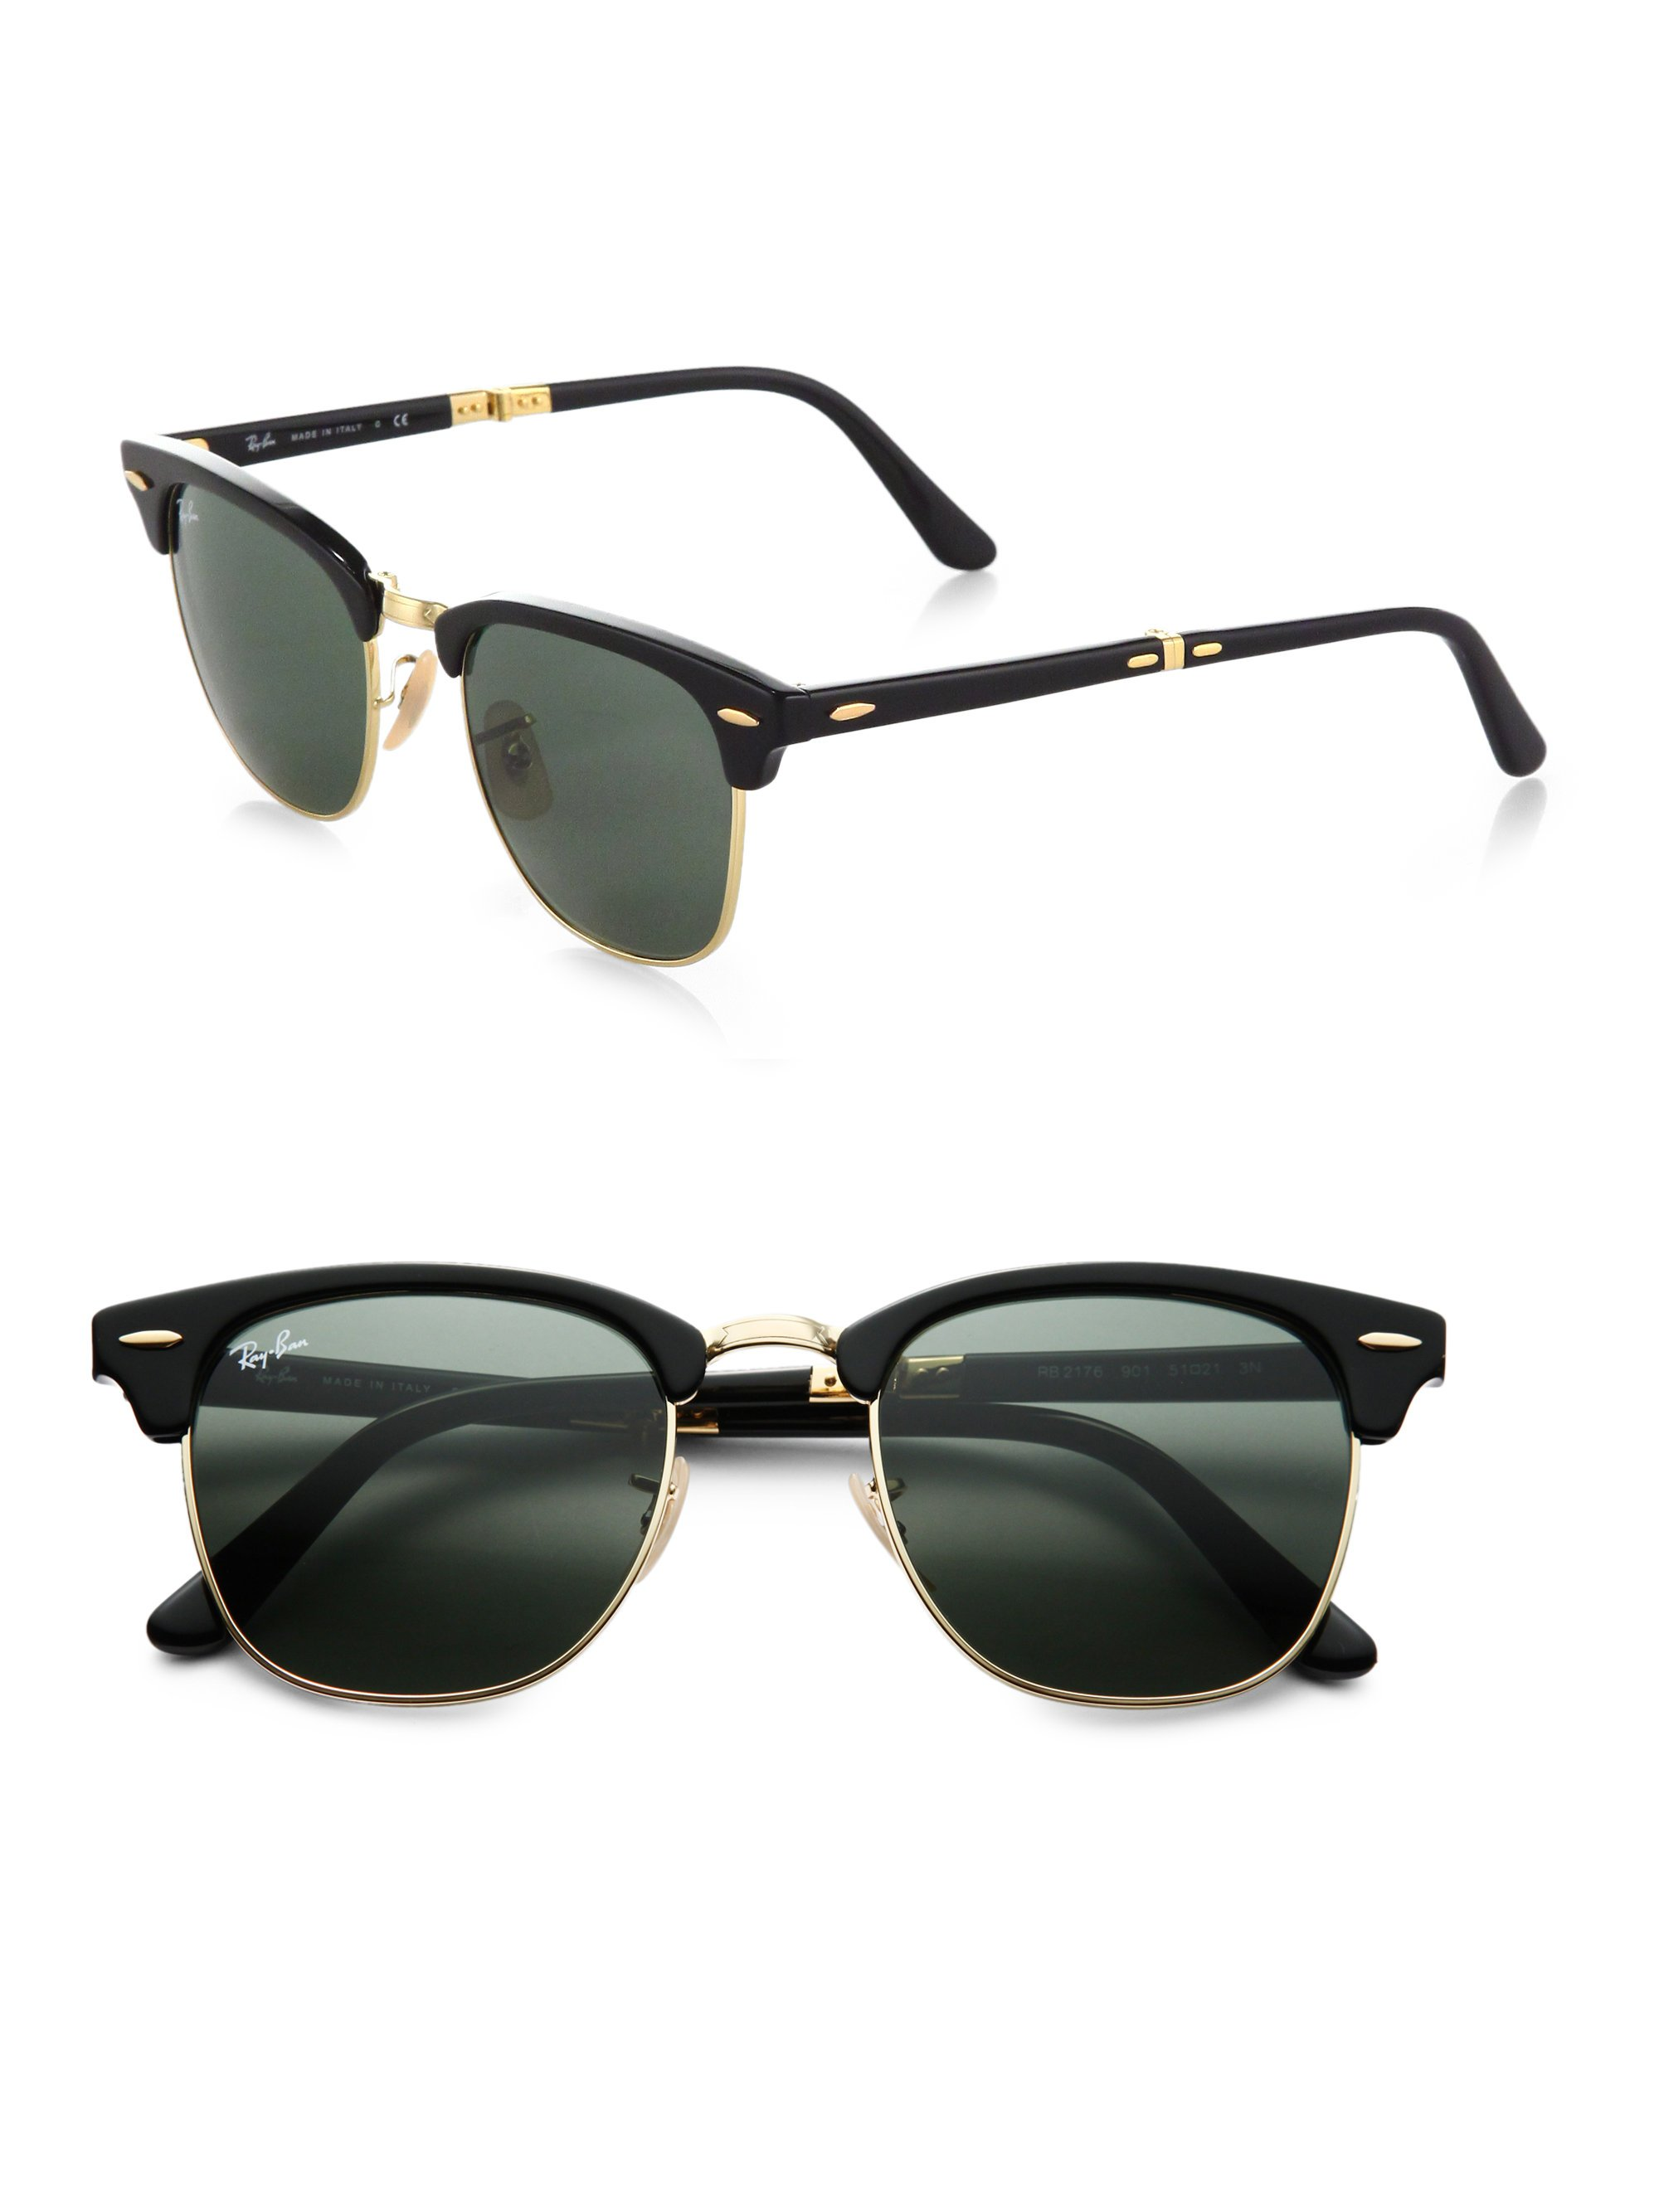 ladies folding ray ban sunglasses  gallery. previously sold at: saks fifth avenue · women's clubmaster sunglasses women's ray ban clubmaster